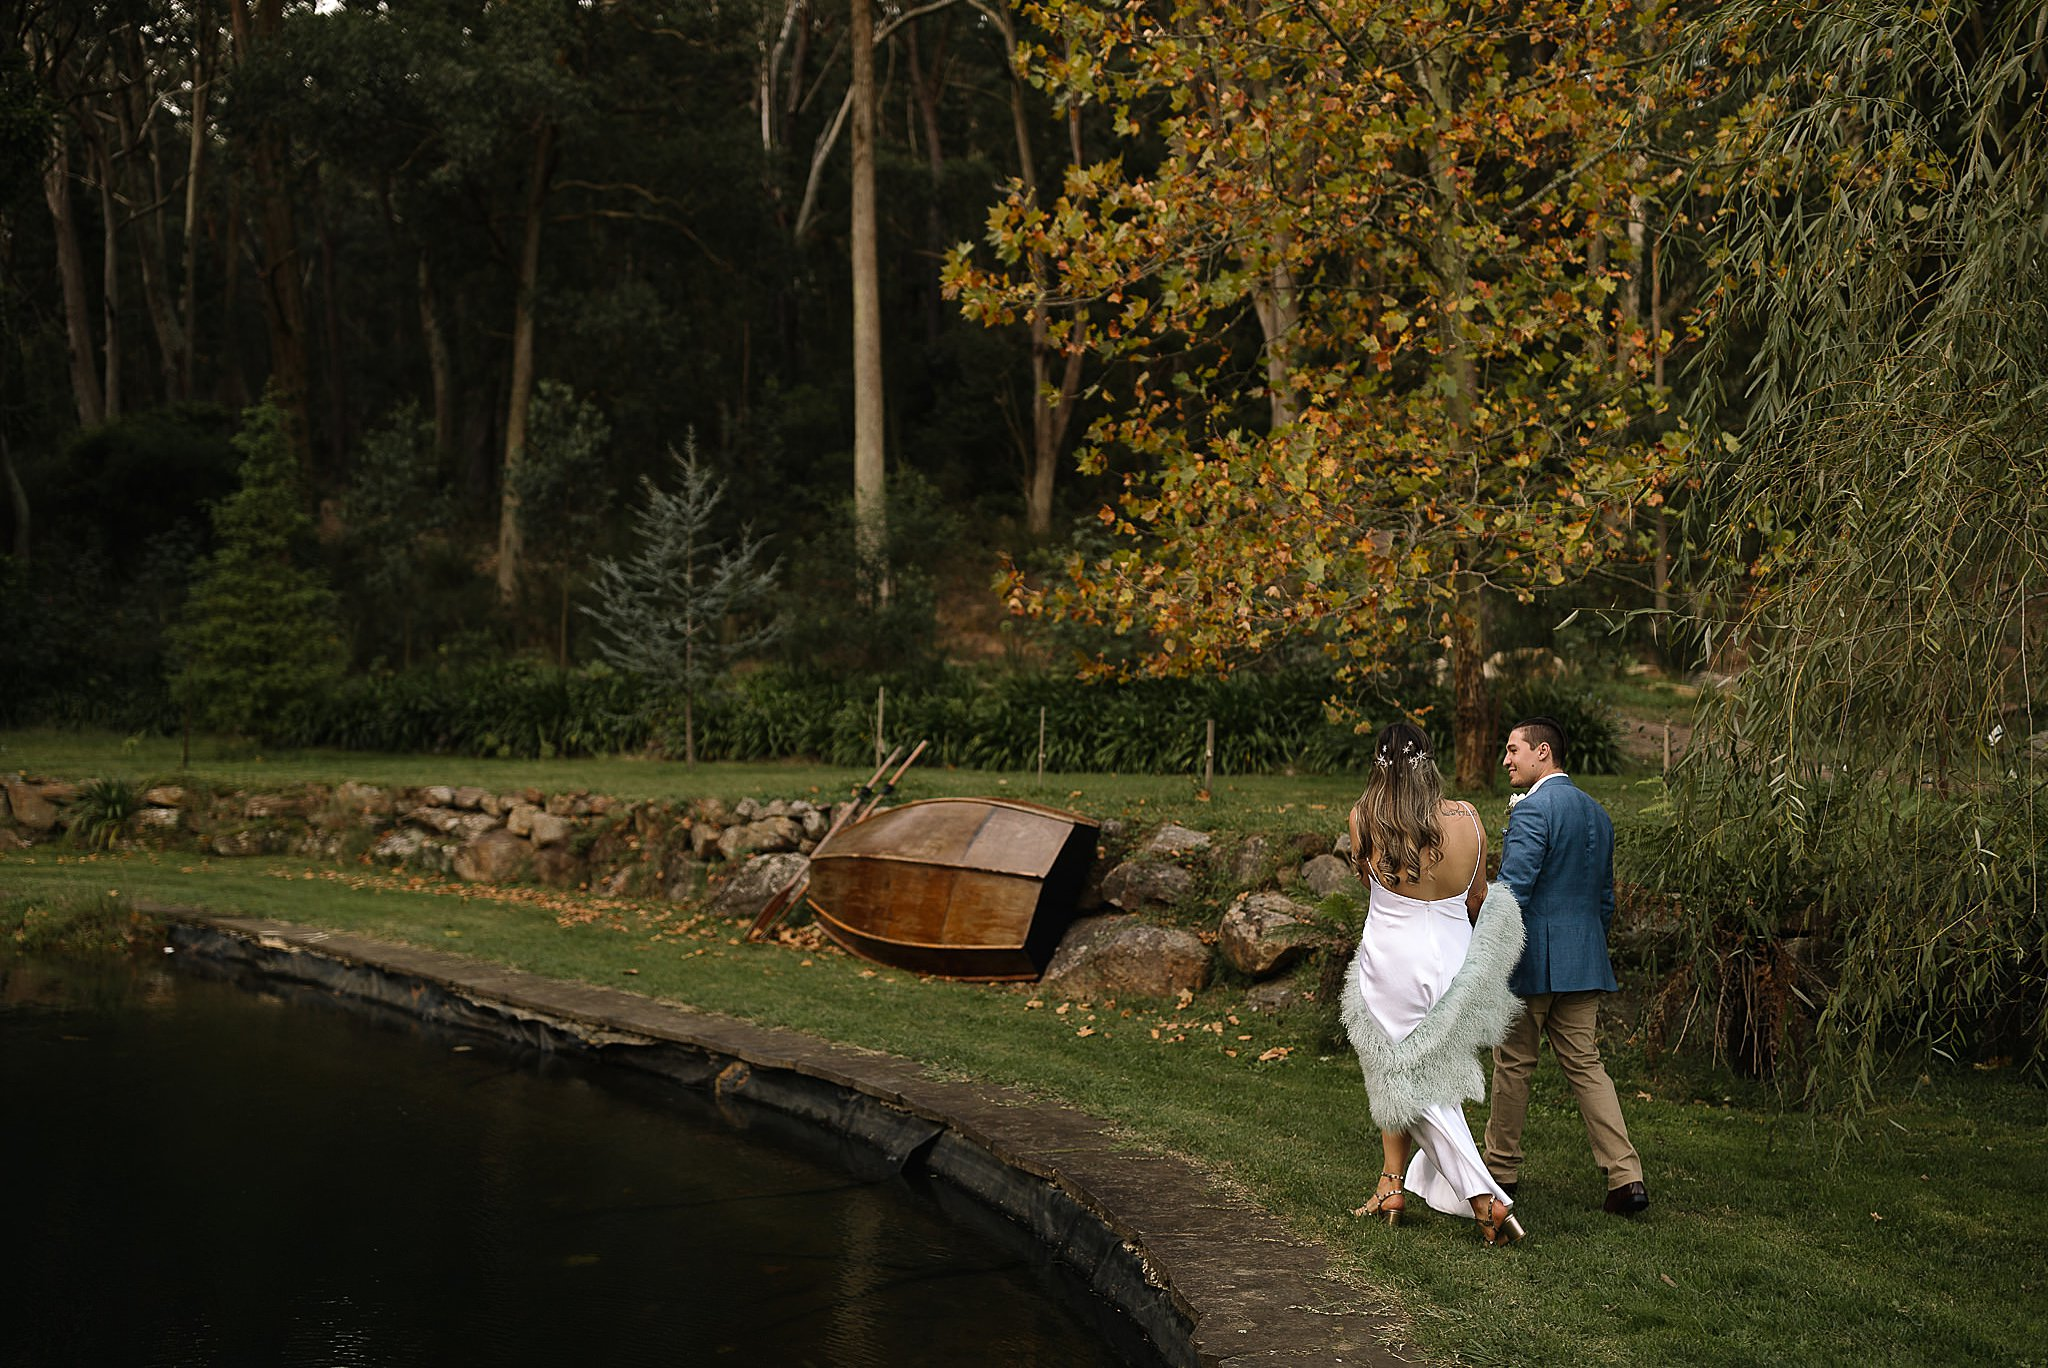 Keepsakephoto by the Keeffes,ACT wedding photographer,ACT weddings,Bowral Wedding Photographer,Southern Highlands Wedding,Canberra Wedding Photographer,Canberra Wedding Photography,canberra weddings,Southern Highlands,Moxom & Whitney,Canberra Photography,country wedding,